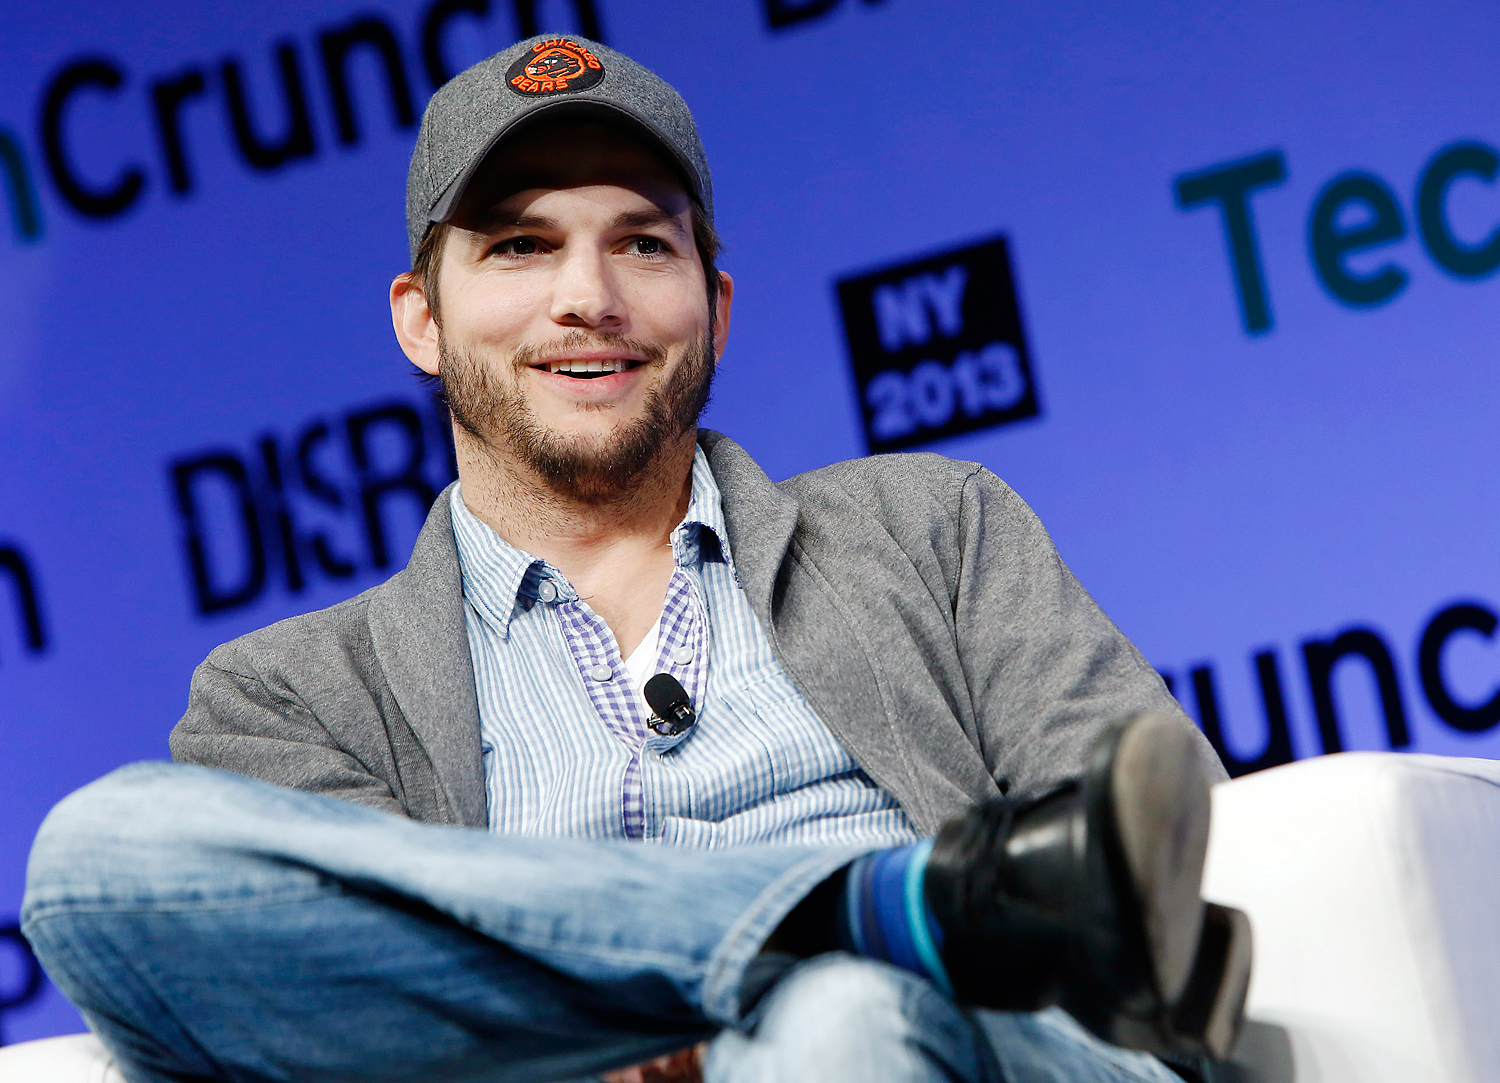 Mila Kunis' significant other is not only a talented actor — he's also business savvy. Kutcher is a big investor in the tech world, running A-Grade Investments.